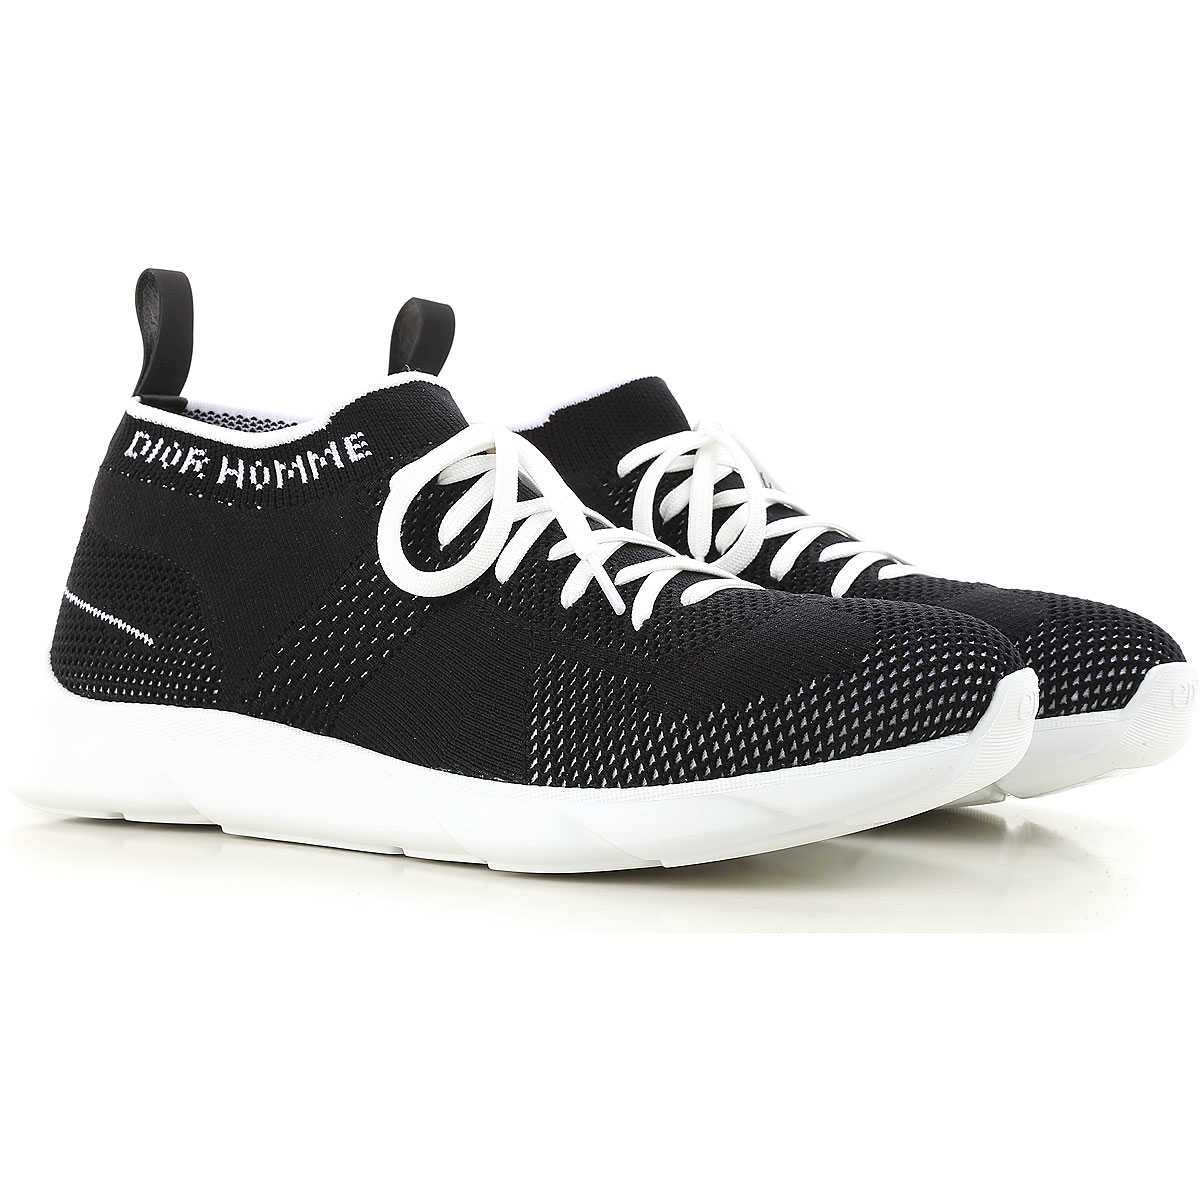 Christian Dior Sneakers for Men On Sale Black - GOOFASH